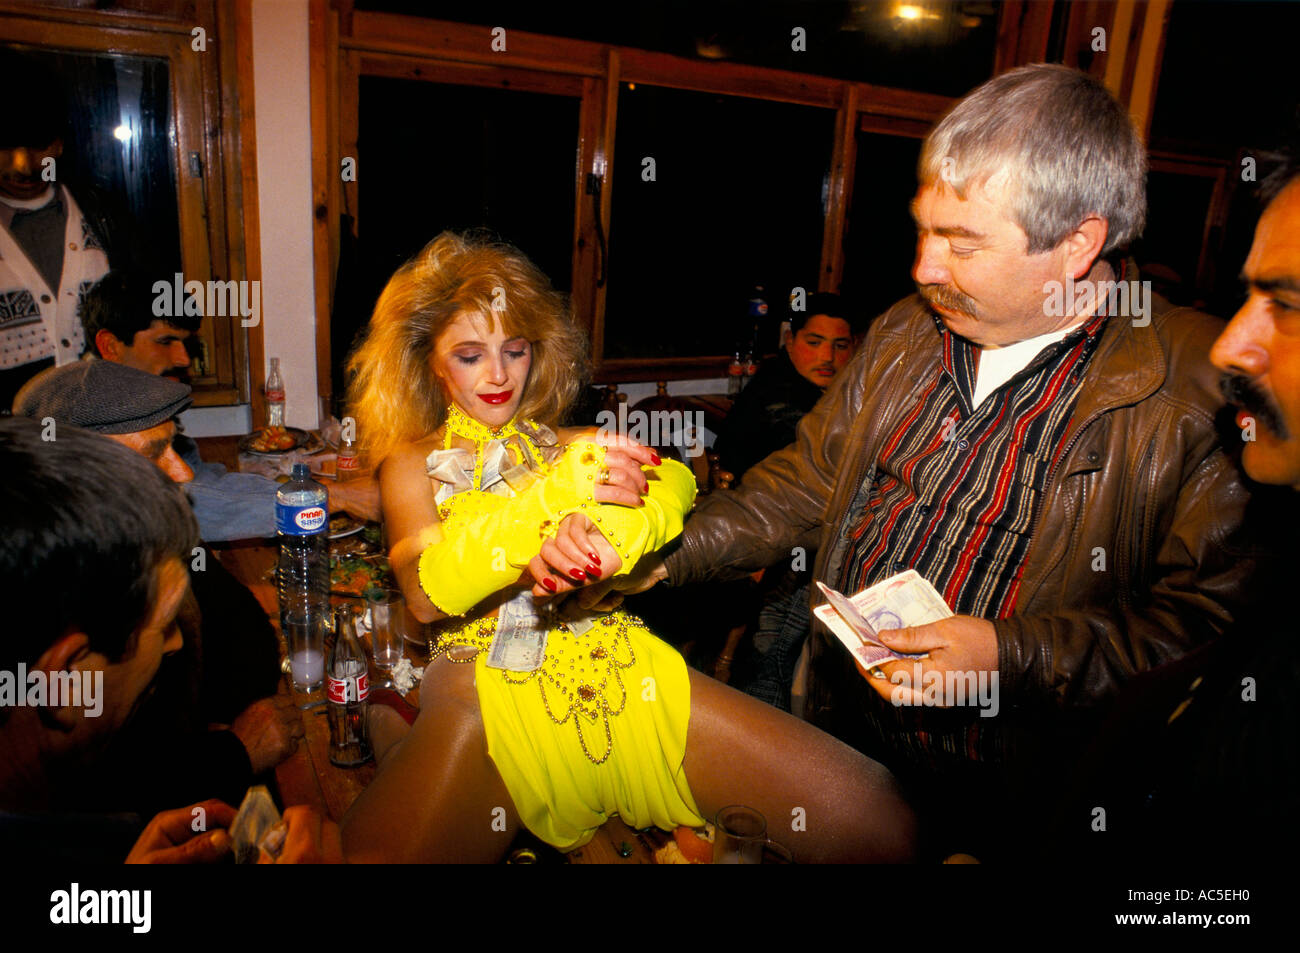 BELLY DANCER RECEIVES MONEY FROM MAN CAMEL OWNERS ANNUAL DINNER EPHESUS  TURKEY 07 1993   Stock